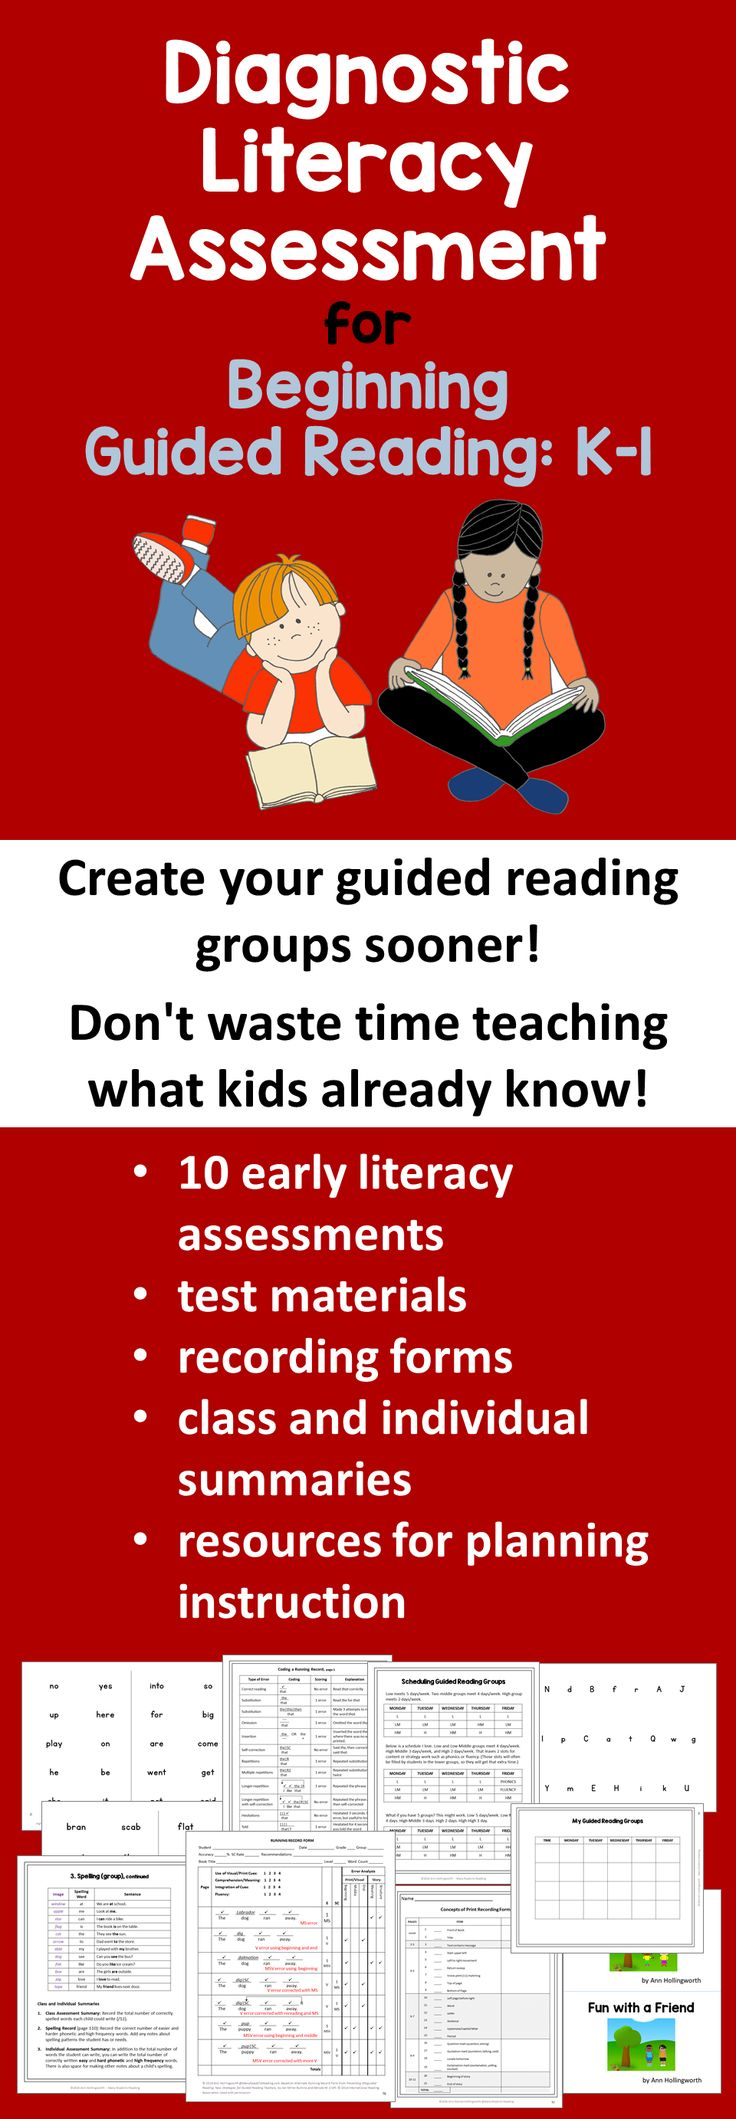 Diagnostic Literacy Assessment for Beginning Guided Reading: K-1 Create guided reading groups sooner! Gather information about your kindergarten or 1st grade students to prepare for guided reading. 10 early literacy diagnostic assessments; test materials (except for leveled books); recording forms; class and individual summaries for compiling results; resources for sorting out,scheduling, and planning guided reading groups.